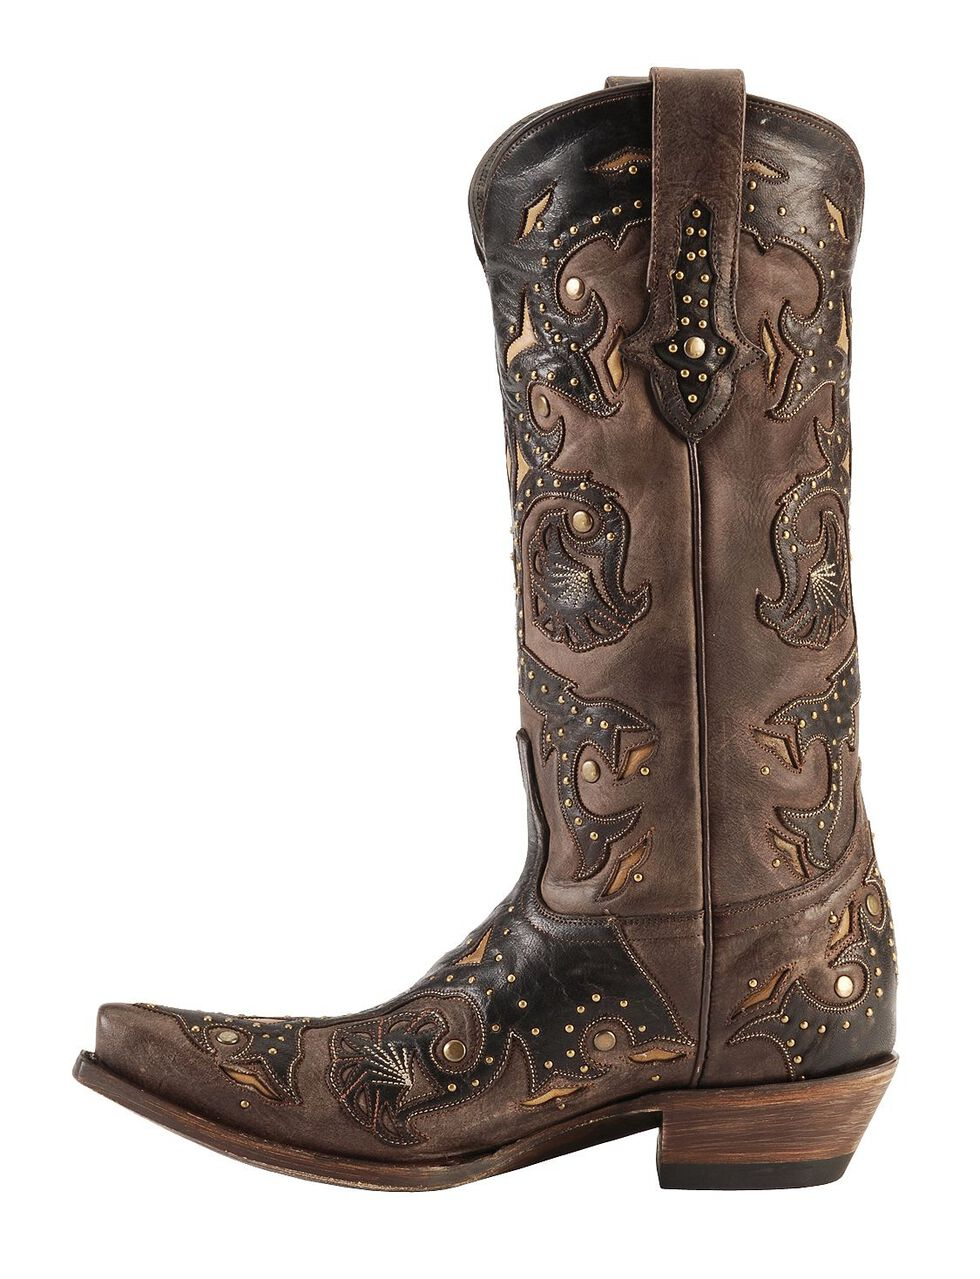 Lucchese Handcrafted 1883 Studded Fiona Cowgirl Boots - Snip Toe, Cafe, hi-res